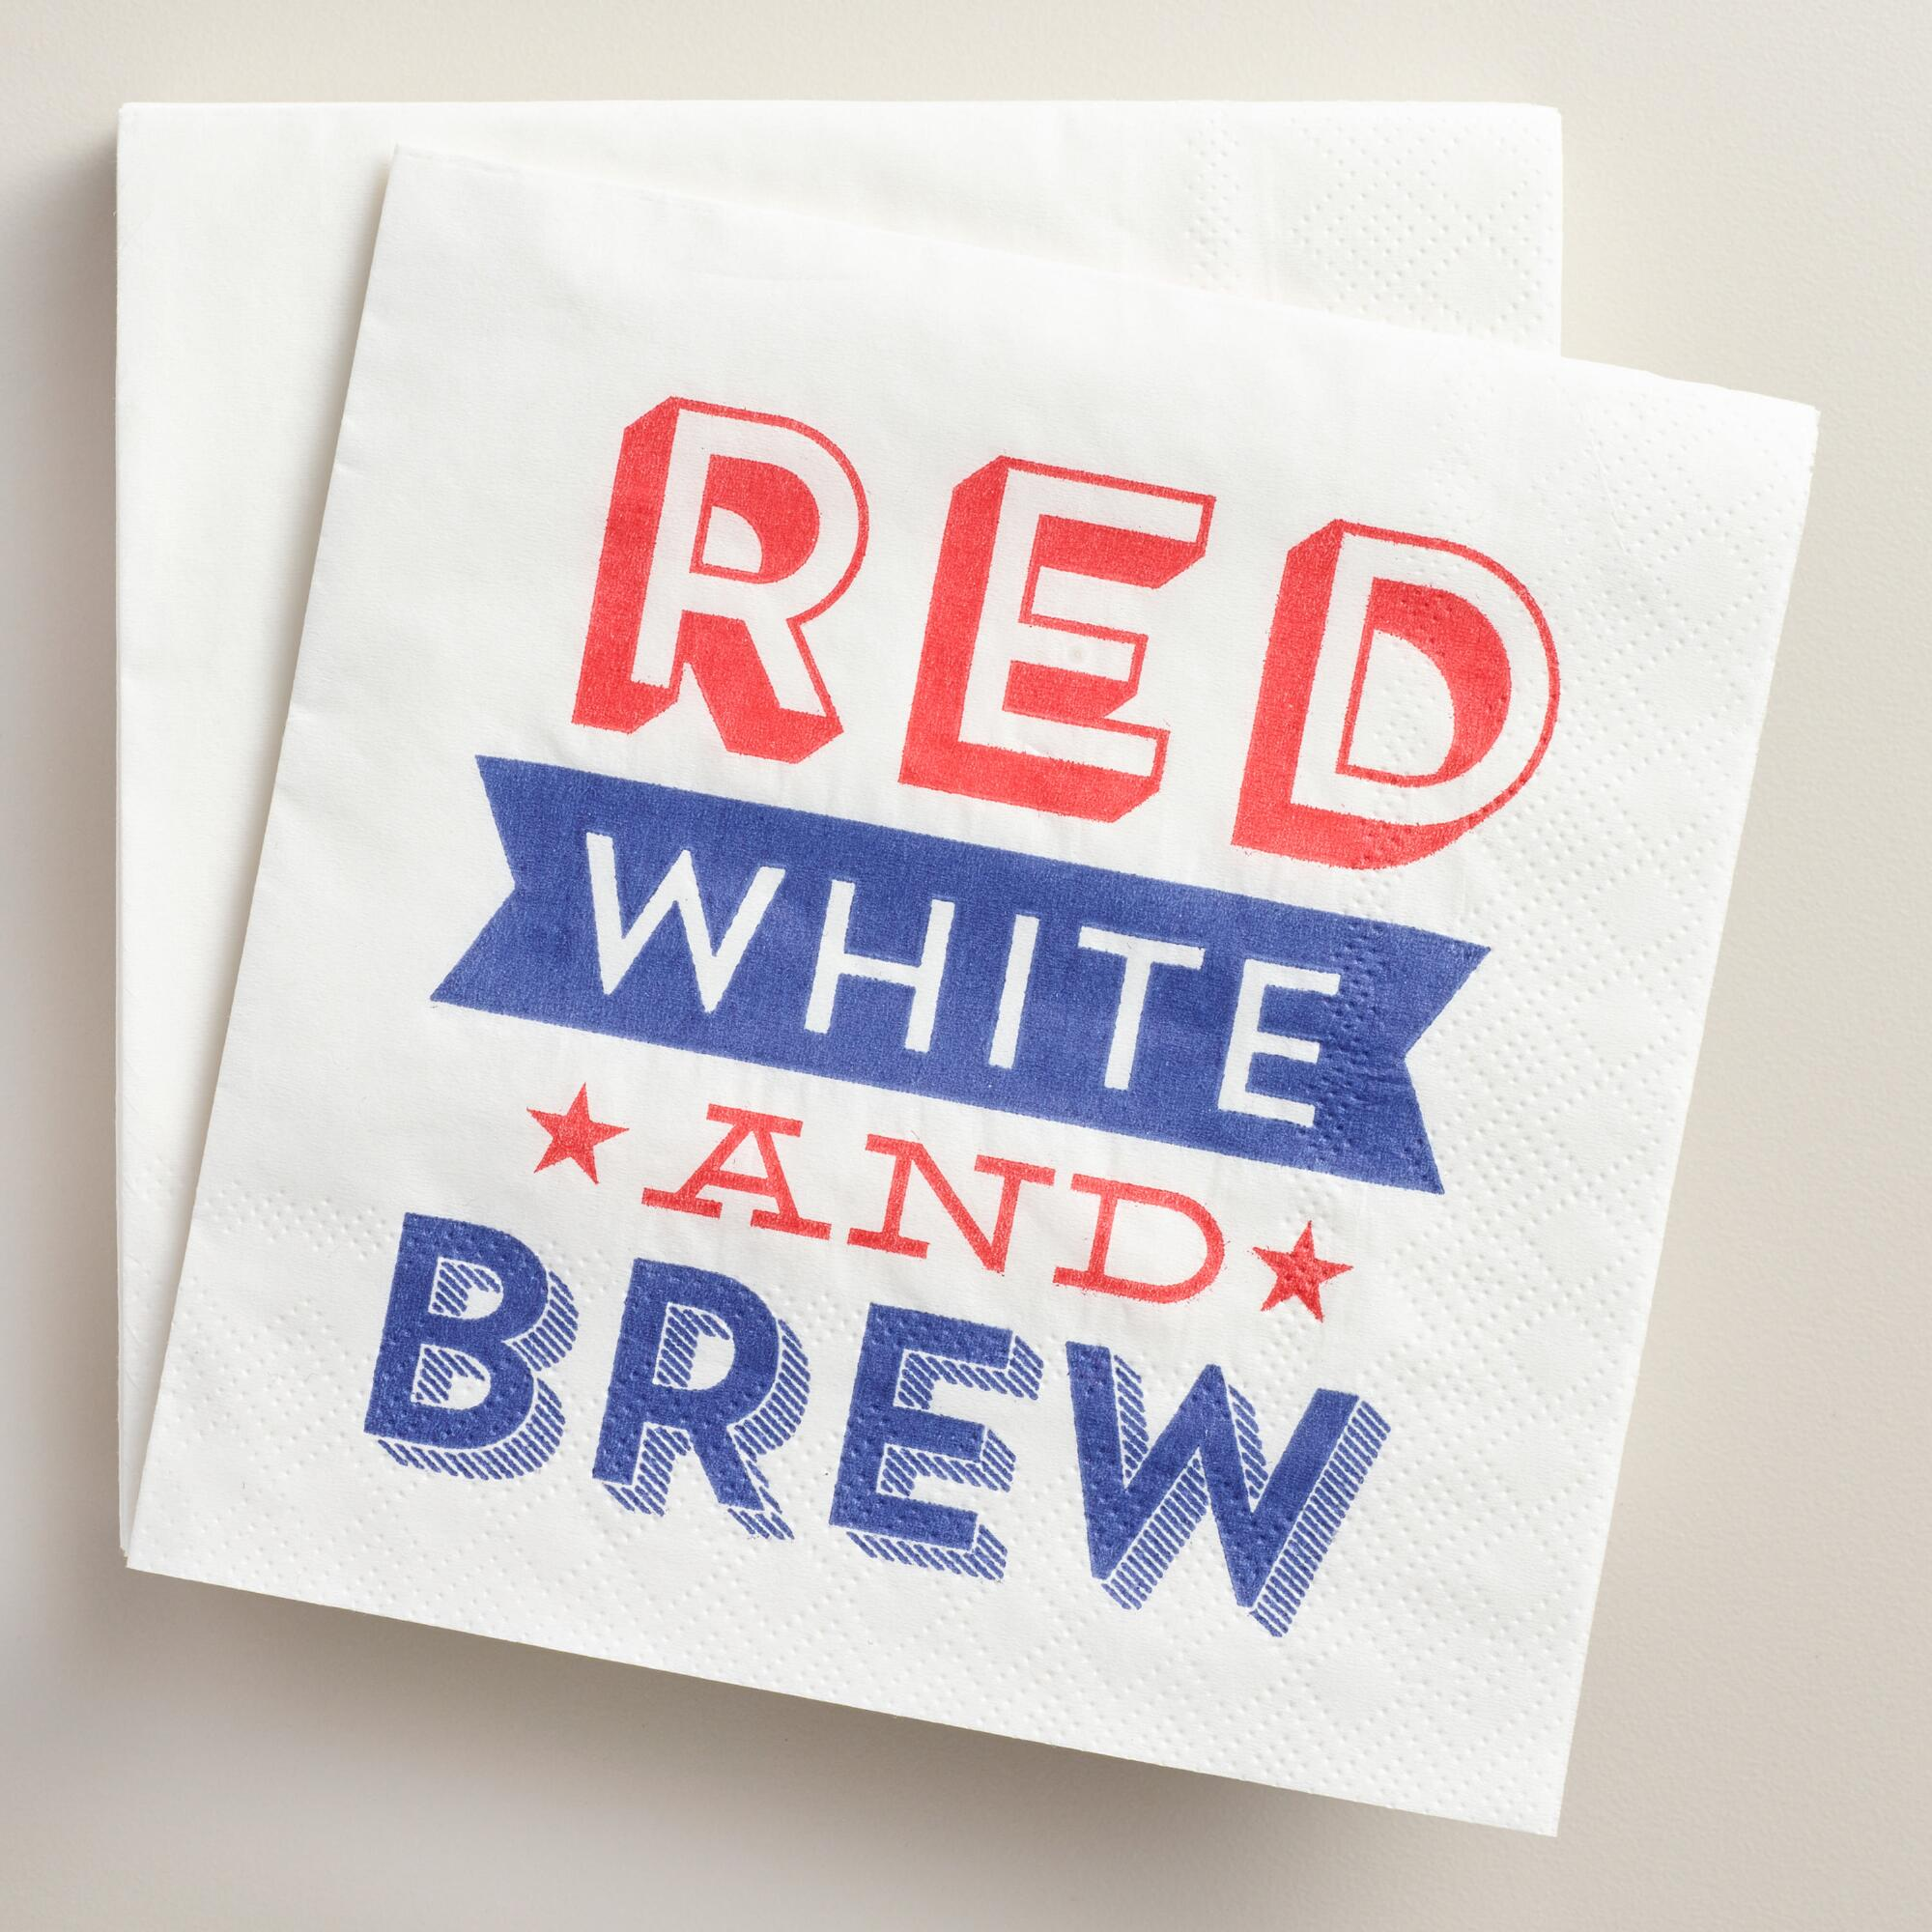 Red White and Brew Beverage Napkins 20 Count | World Market - photo#1